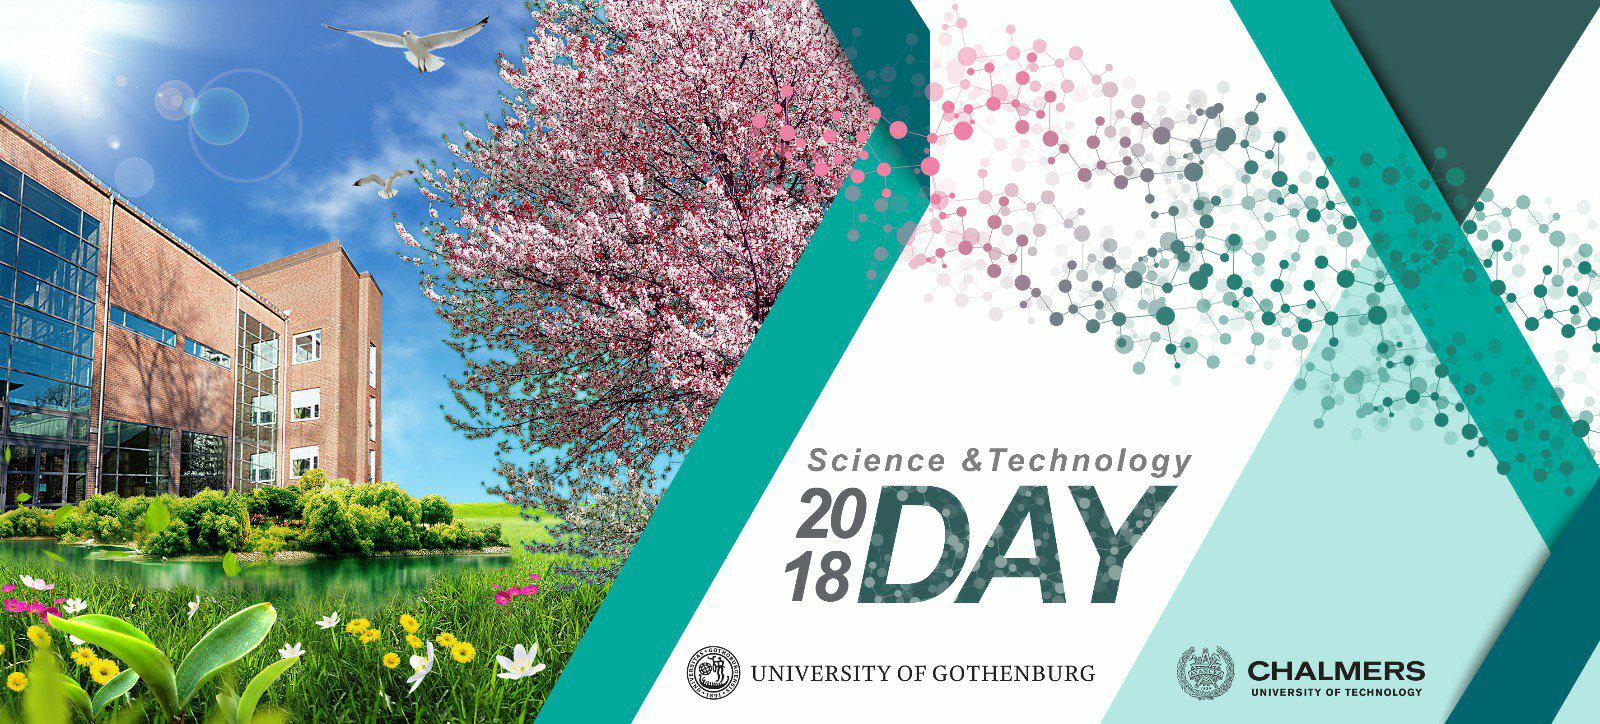 science and technology day 2018 chalmers